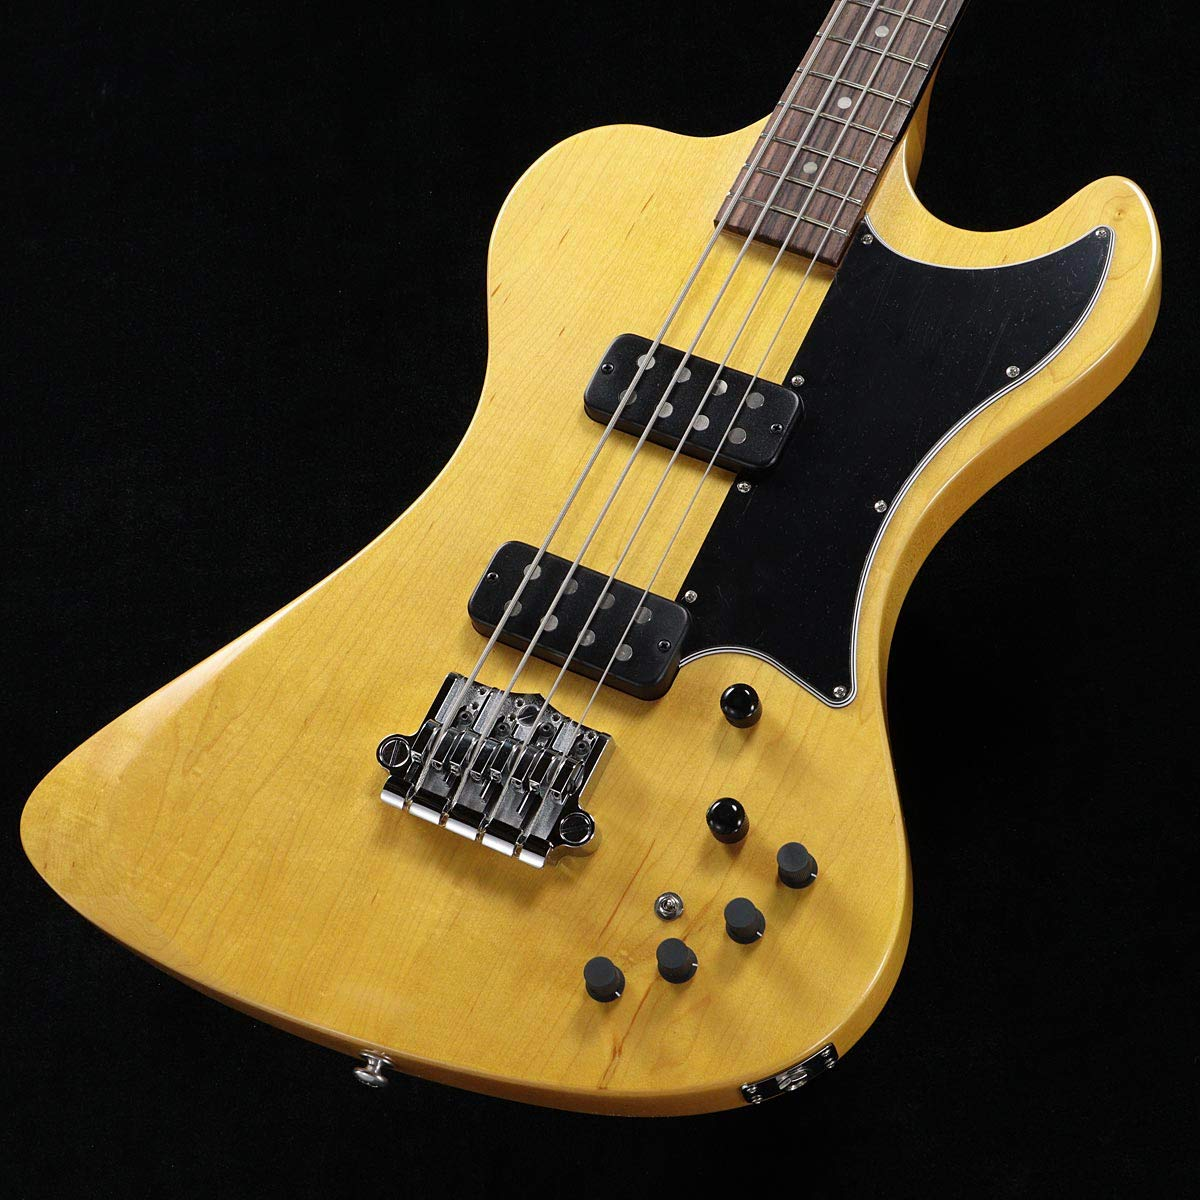 【超歓迎】 Gibson Natural/RD Artist Bass Artist 2018 Antique Gibson/RD Natural B07RBTMH5M, 音響機器/監視機器のヨコプロ:4a72f836 --- easycartsolution.com